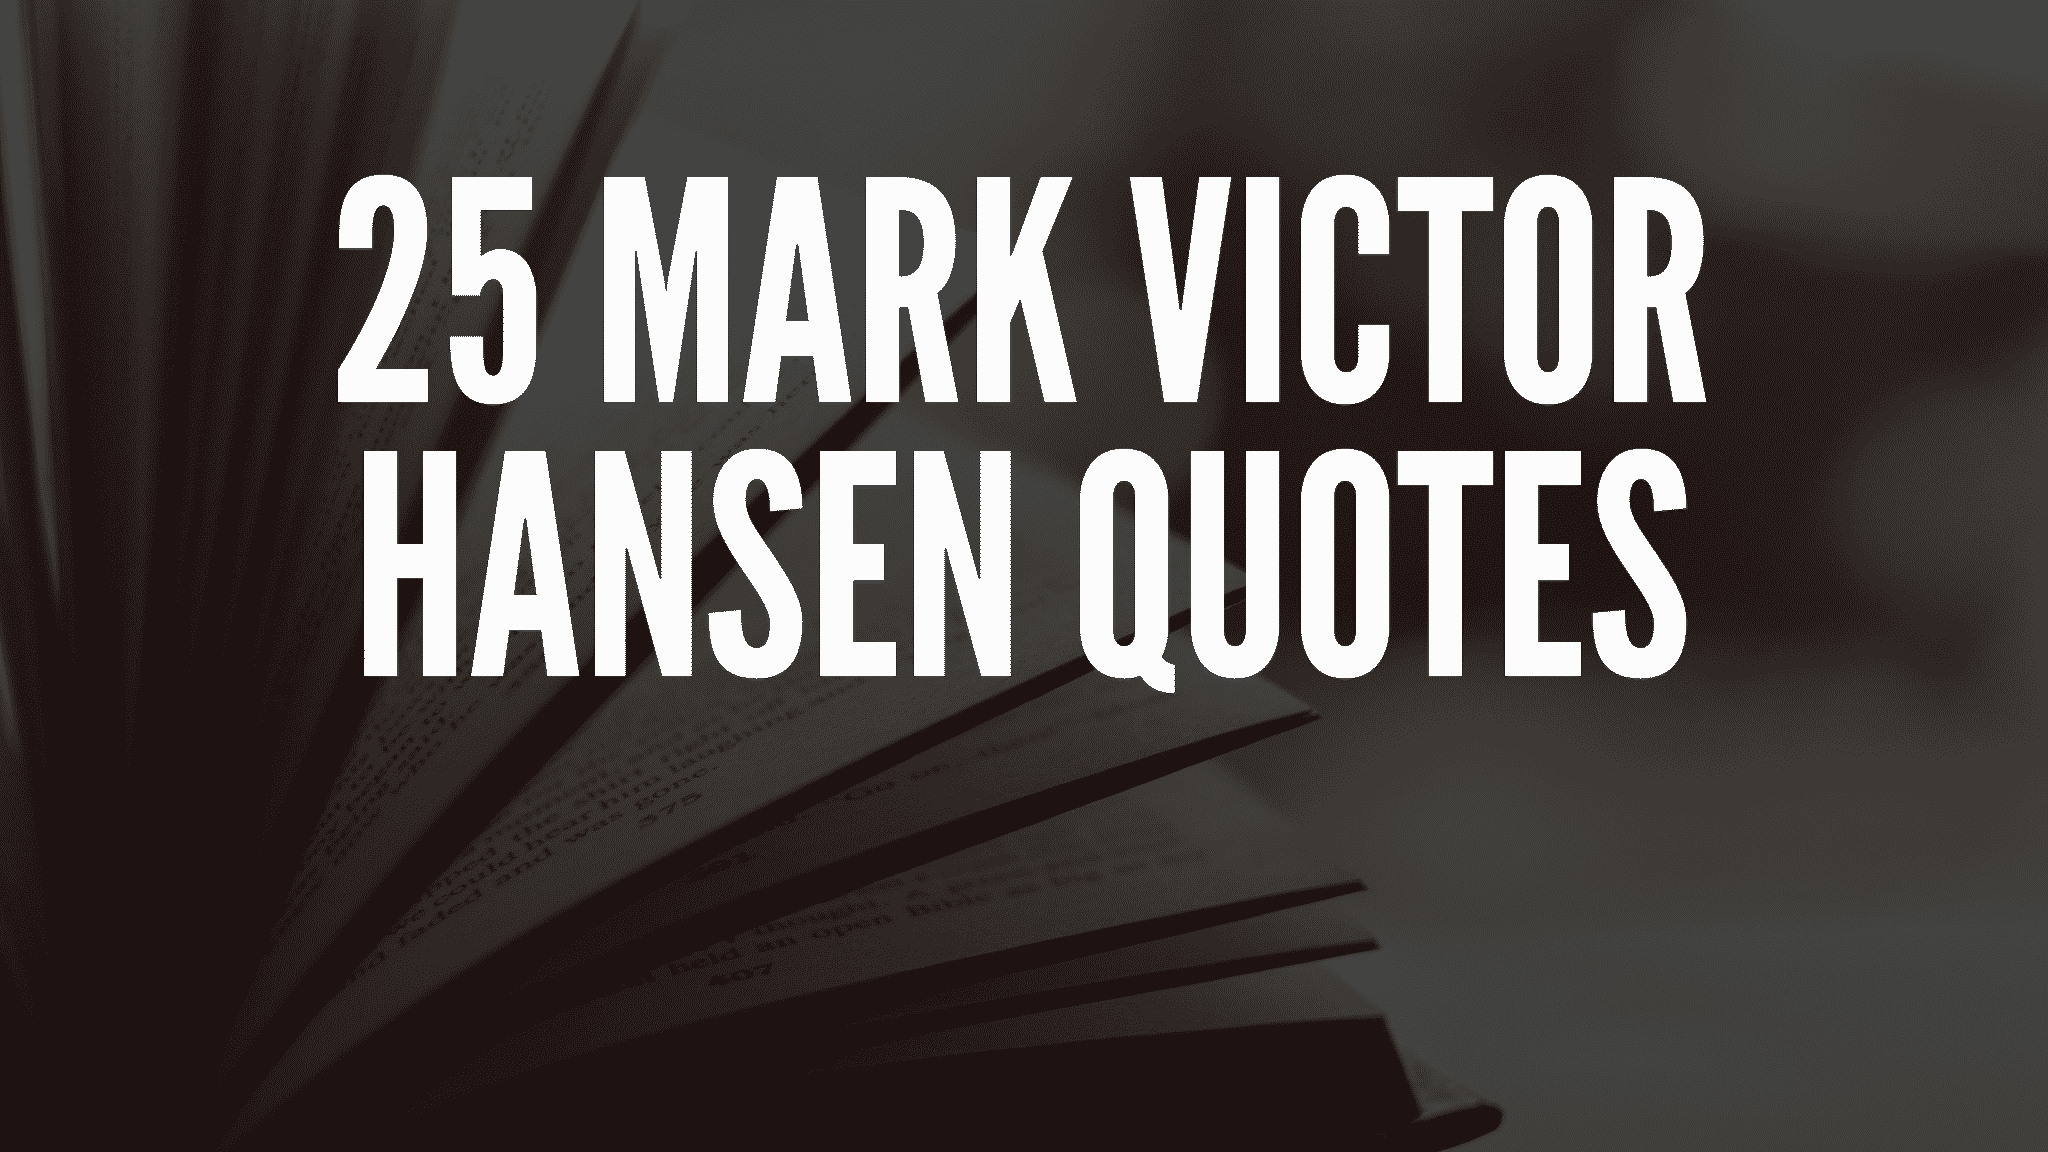 25 Mark Victor Hansen Quotes